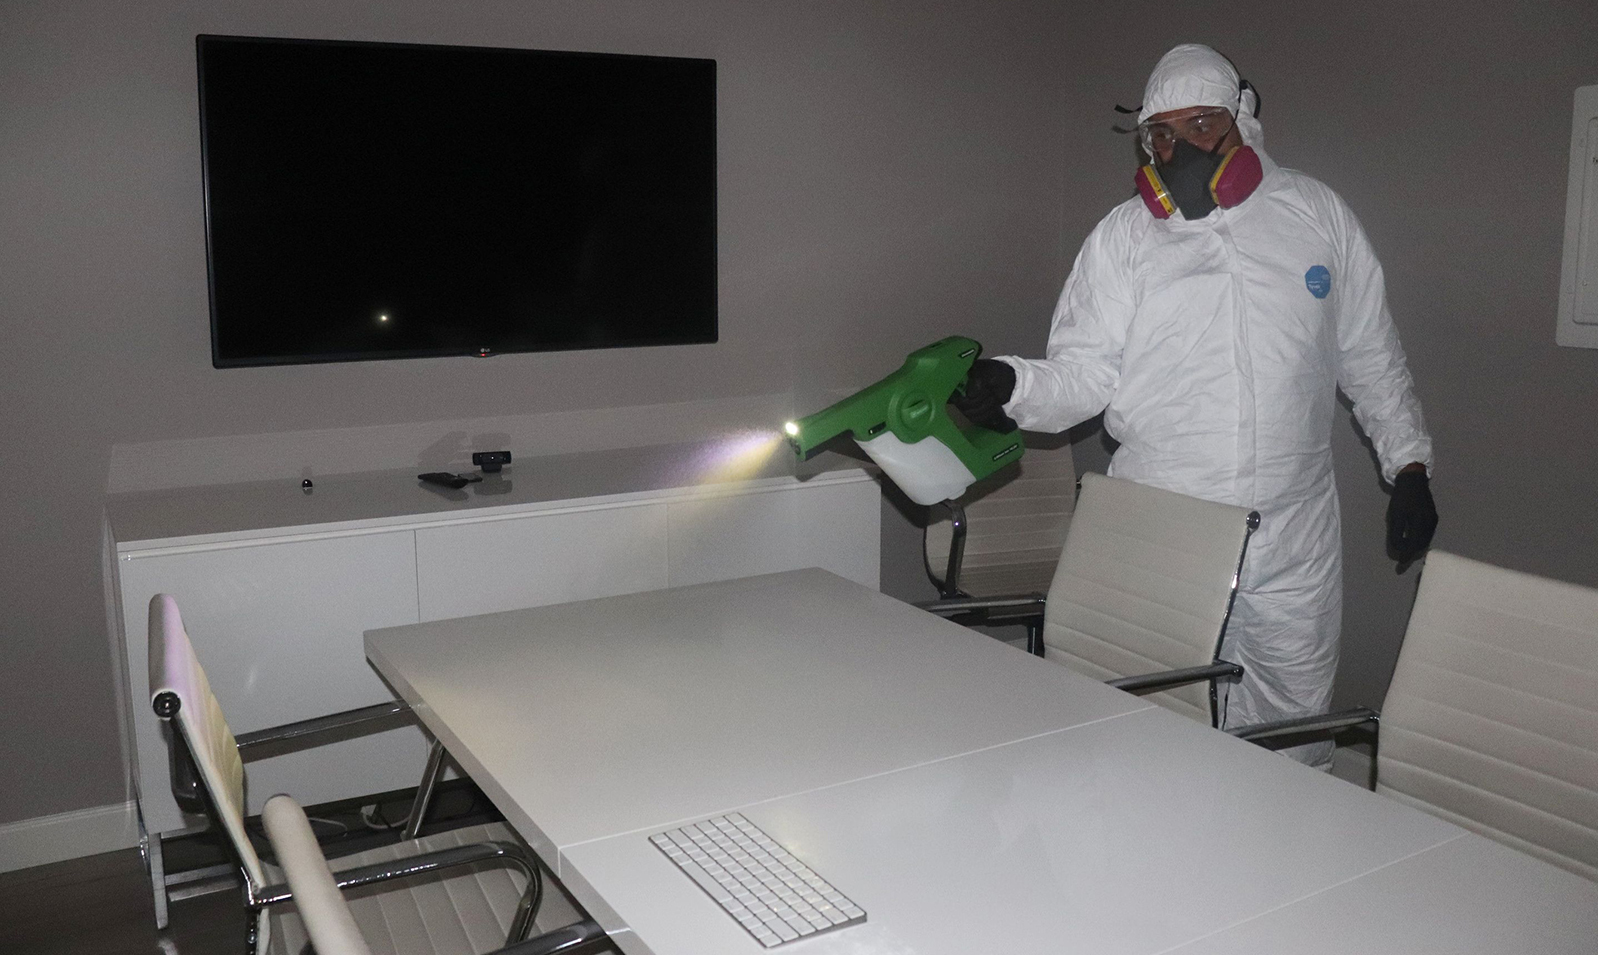 How Using An EPA-Approved Antimicrobial Surface Coating Can Kill Viruses for Up to 30 Days